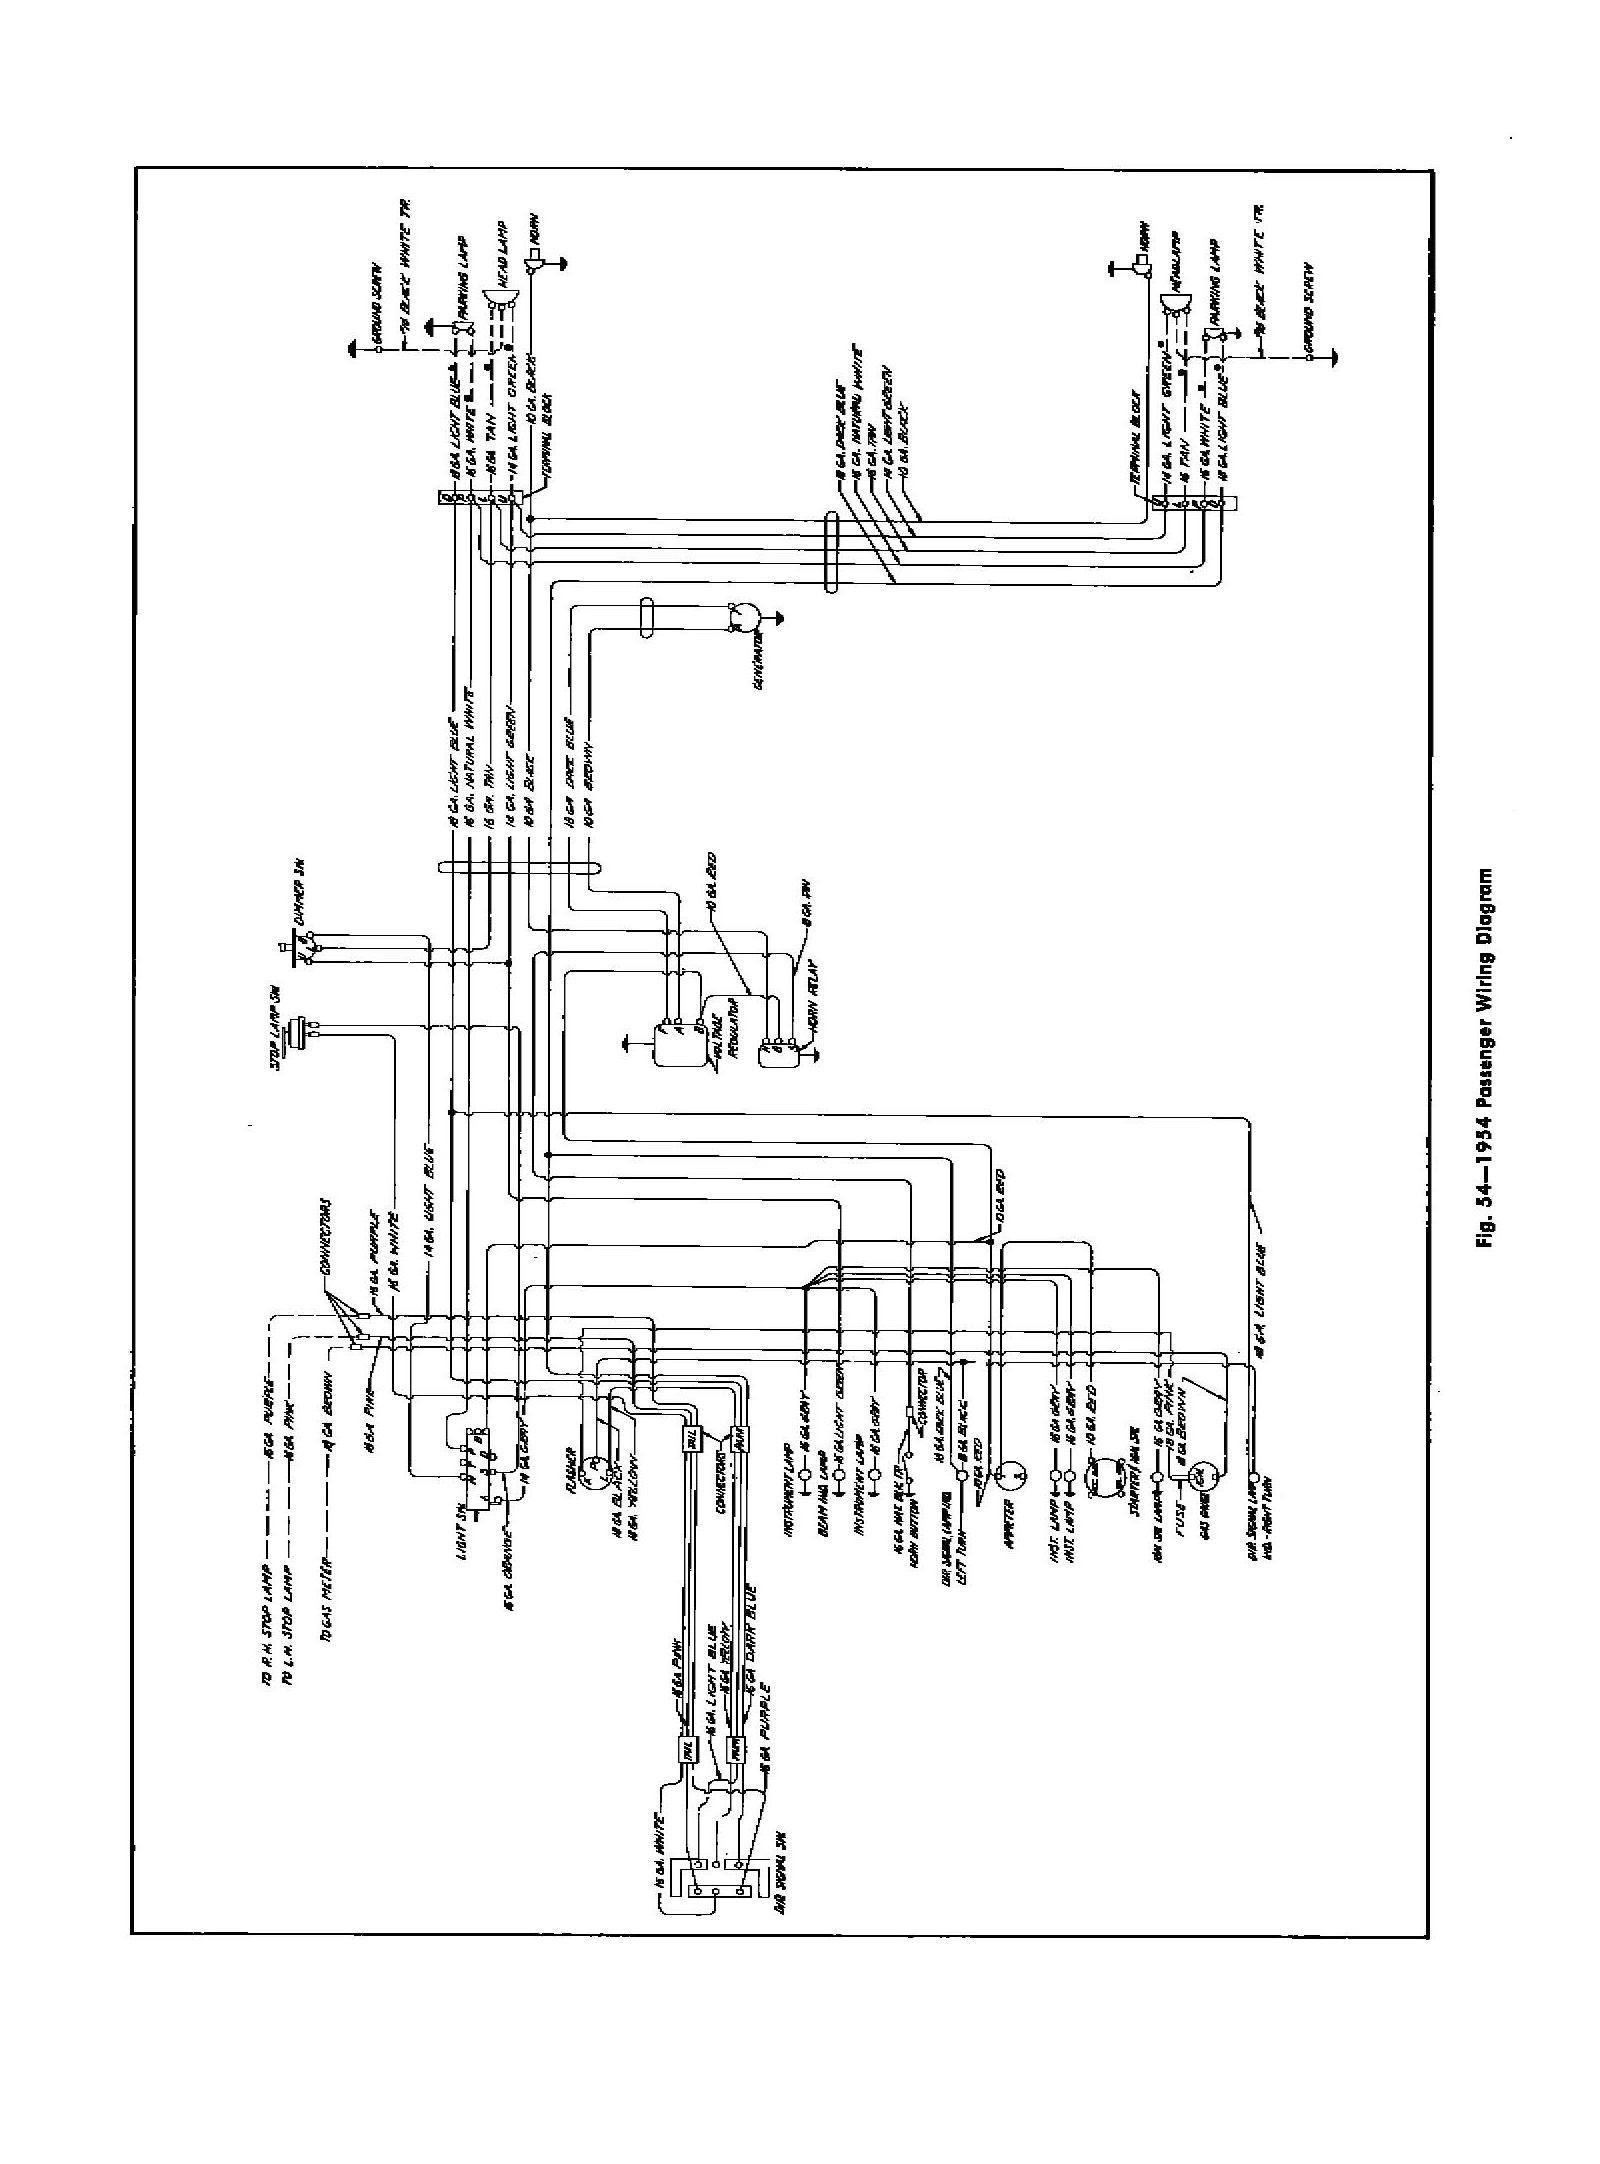 1954 chevy wiring diagram 12v wiring diagram chevy wiring diagrams